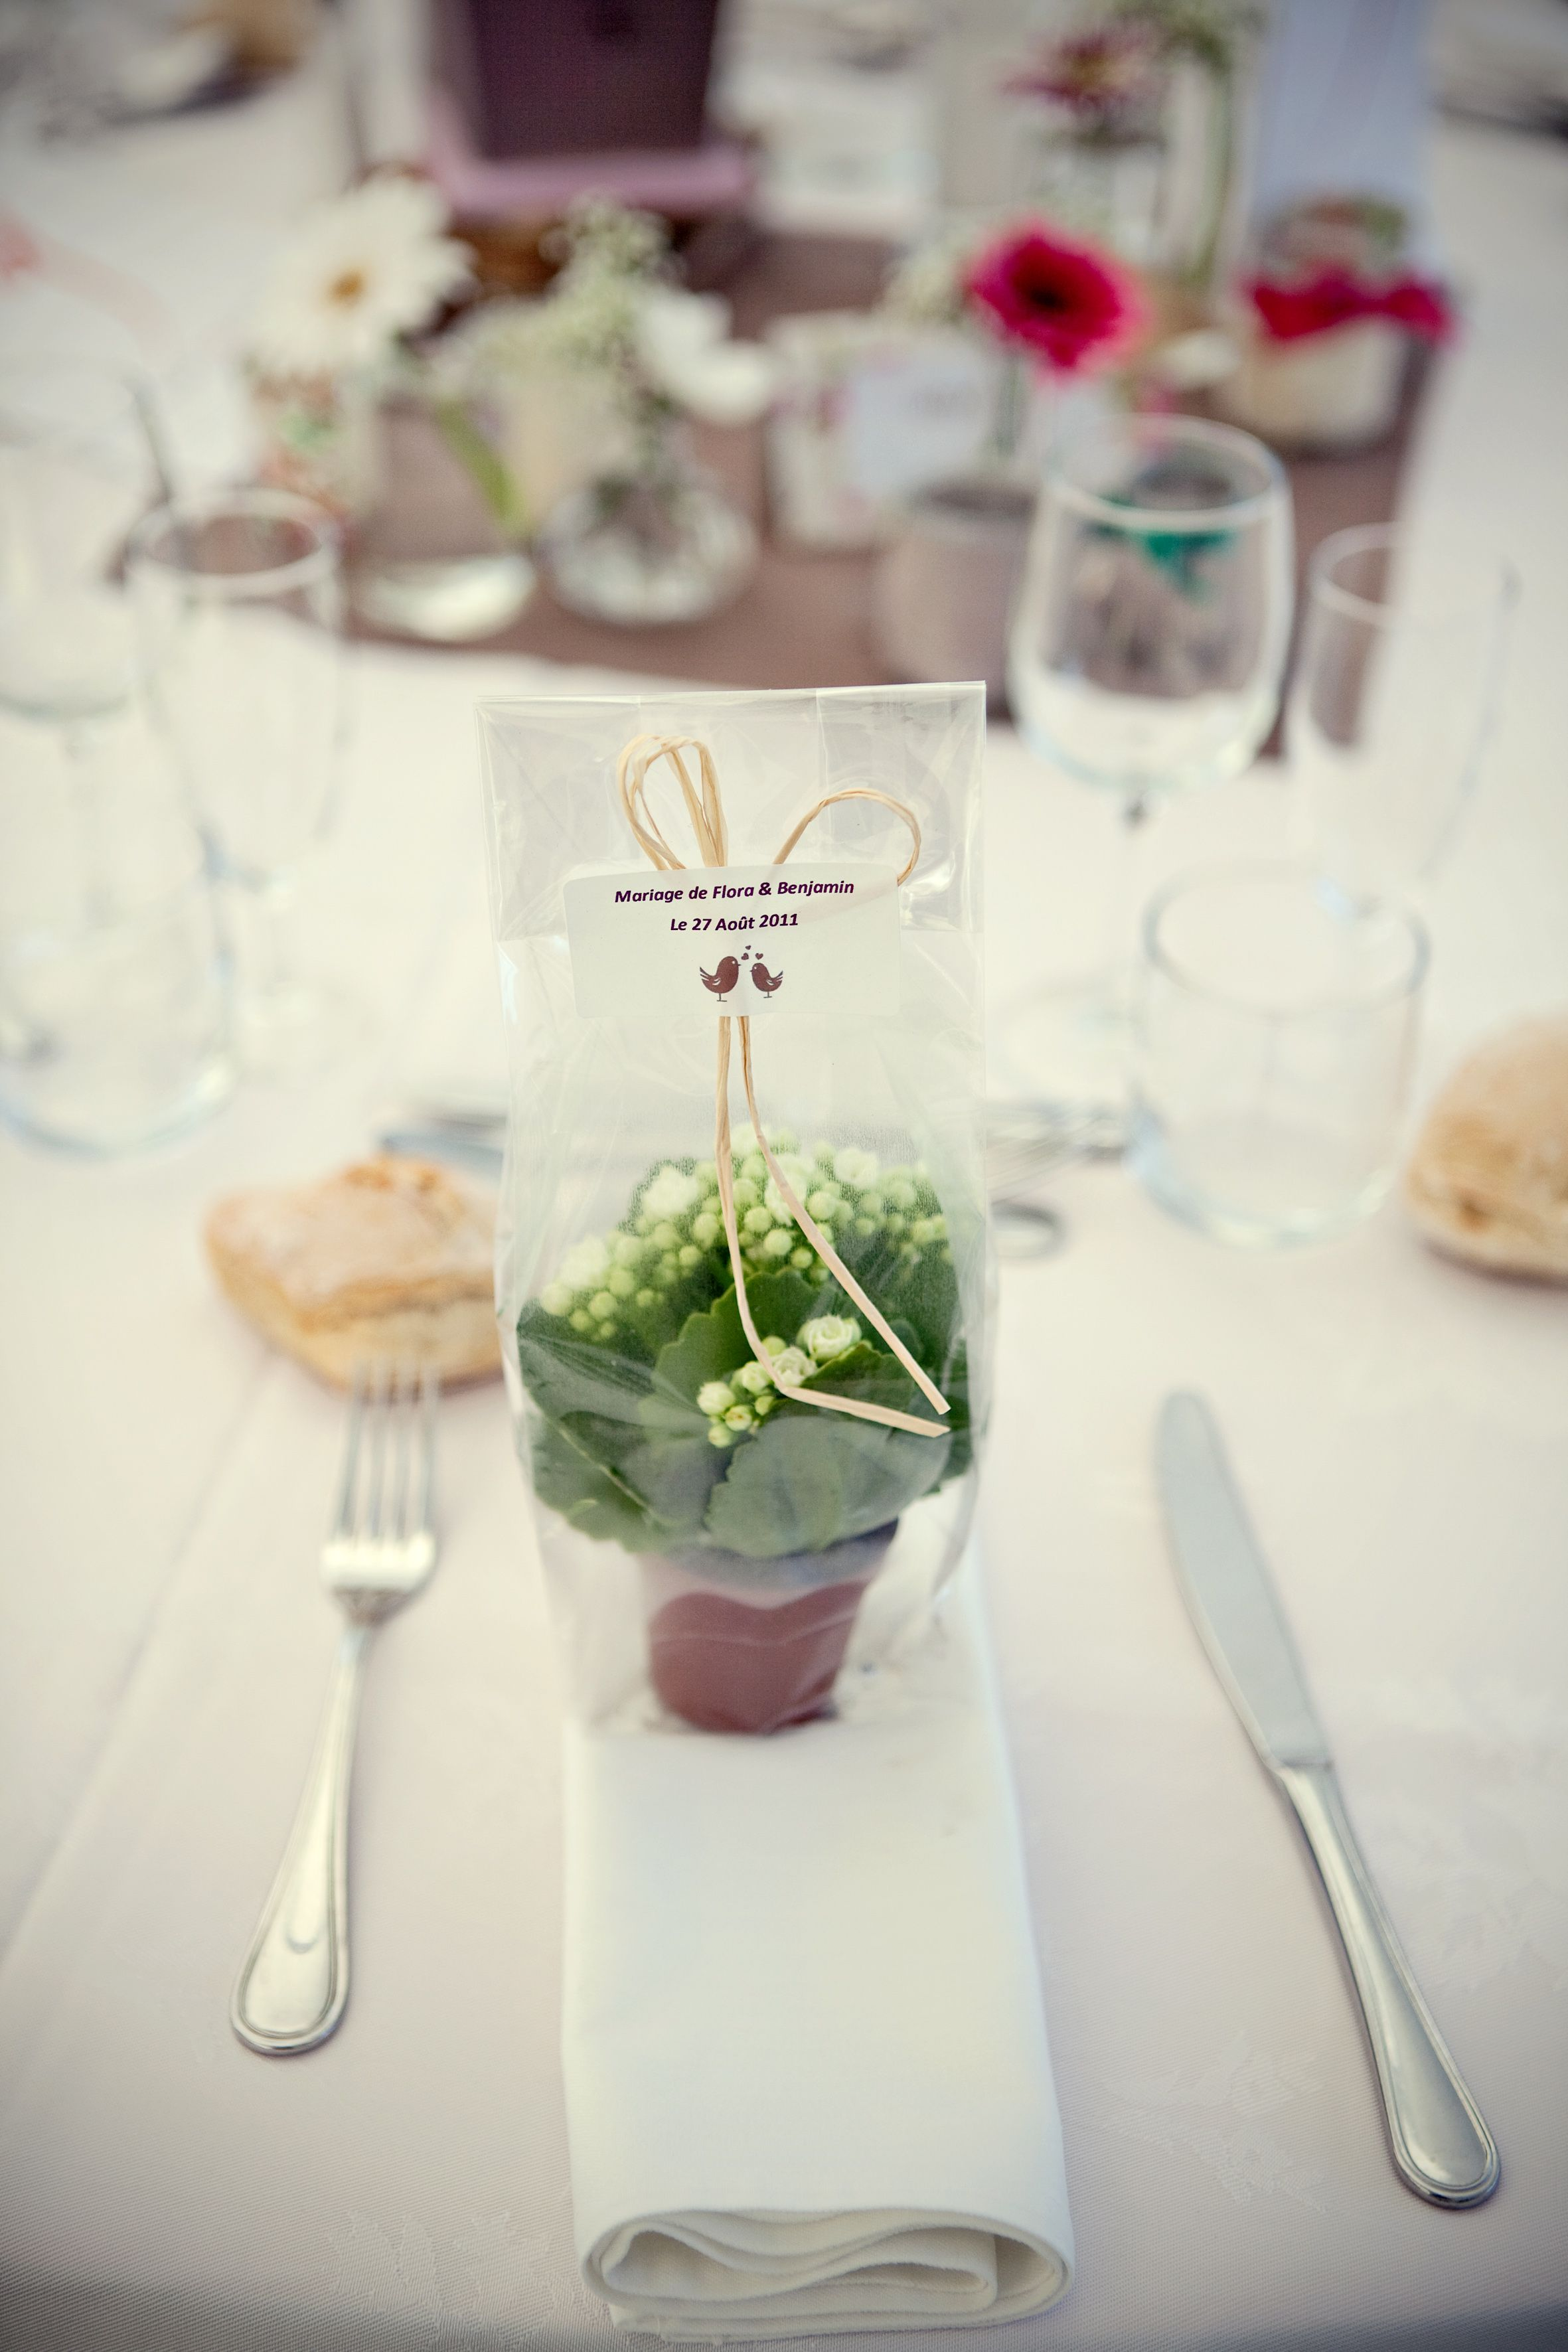 Marianne Taylor Photography | Tablescapes | Pinterest | Favours ...